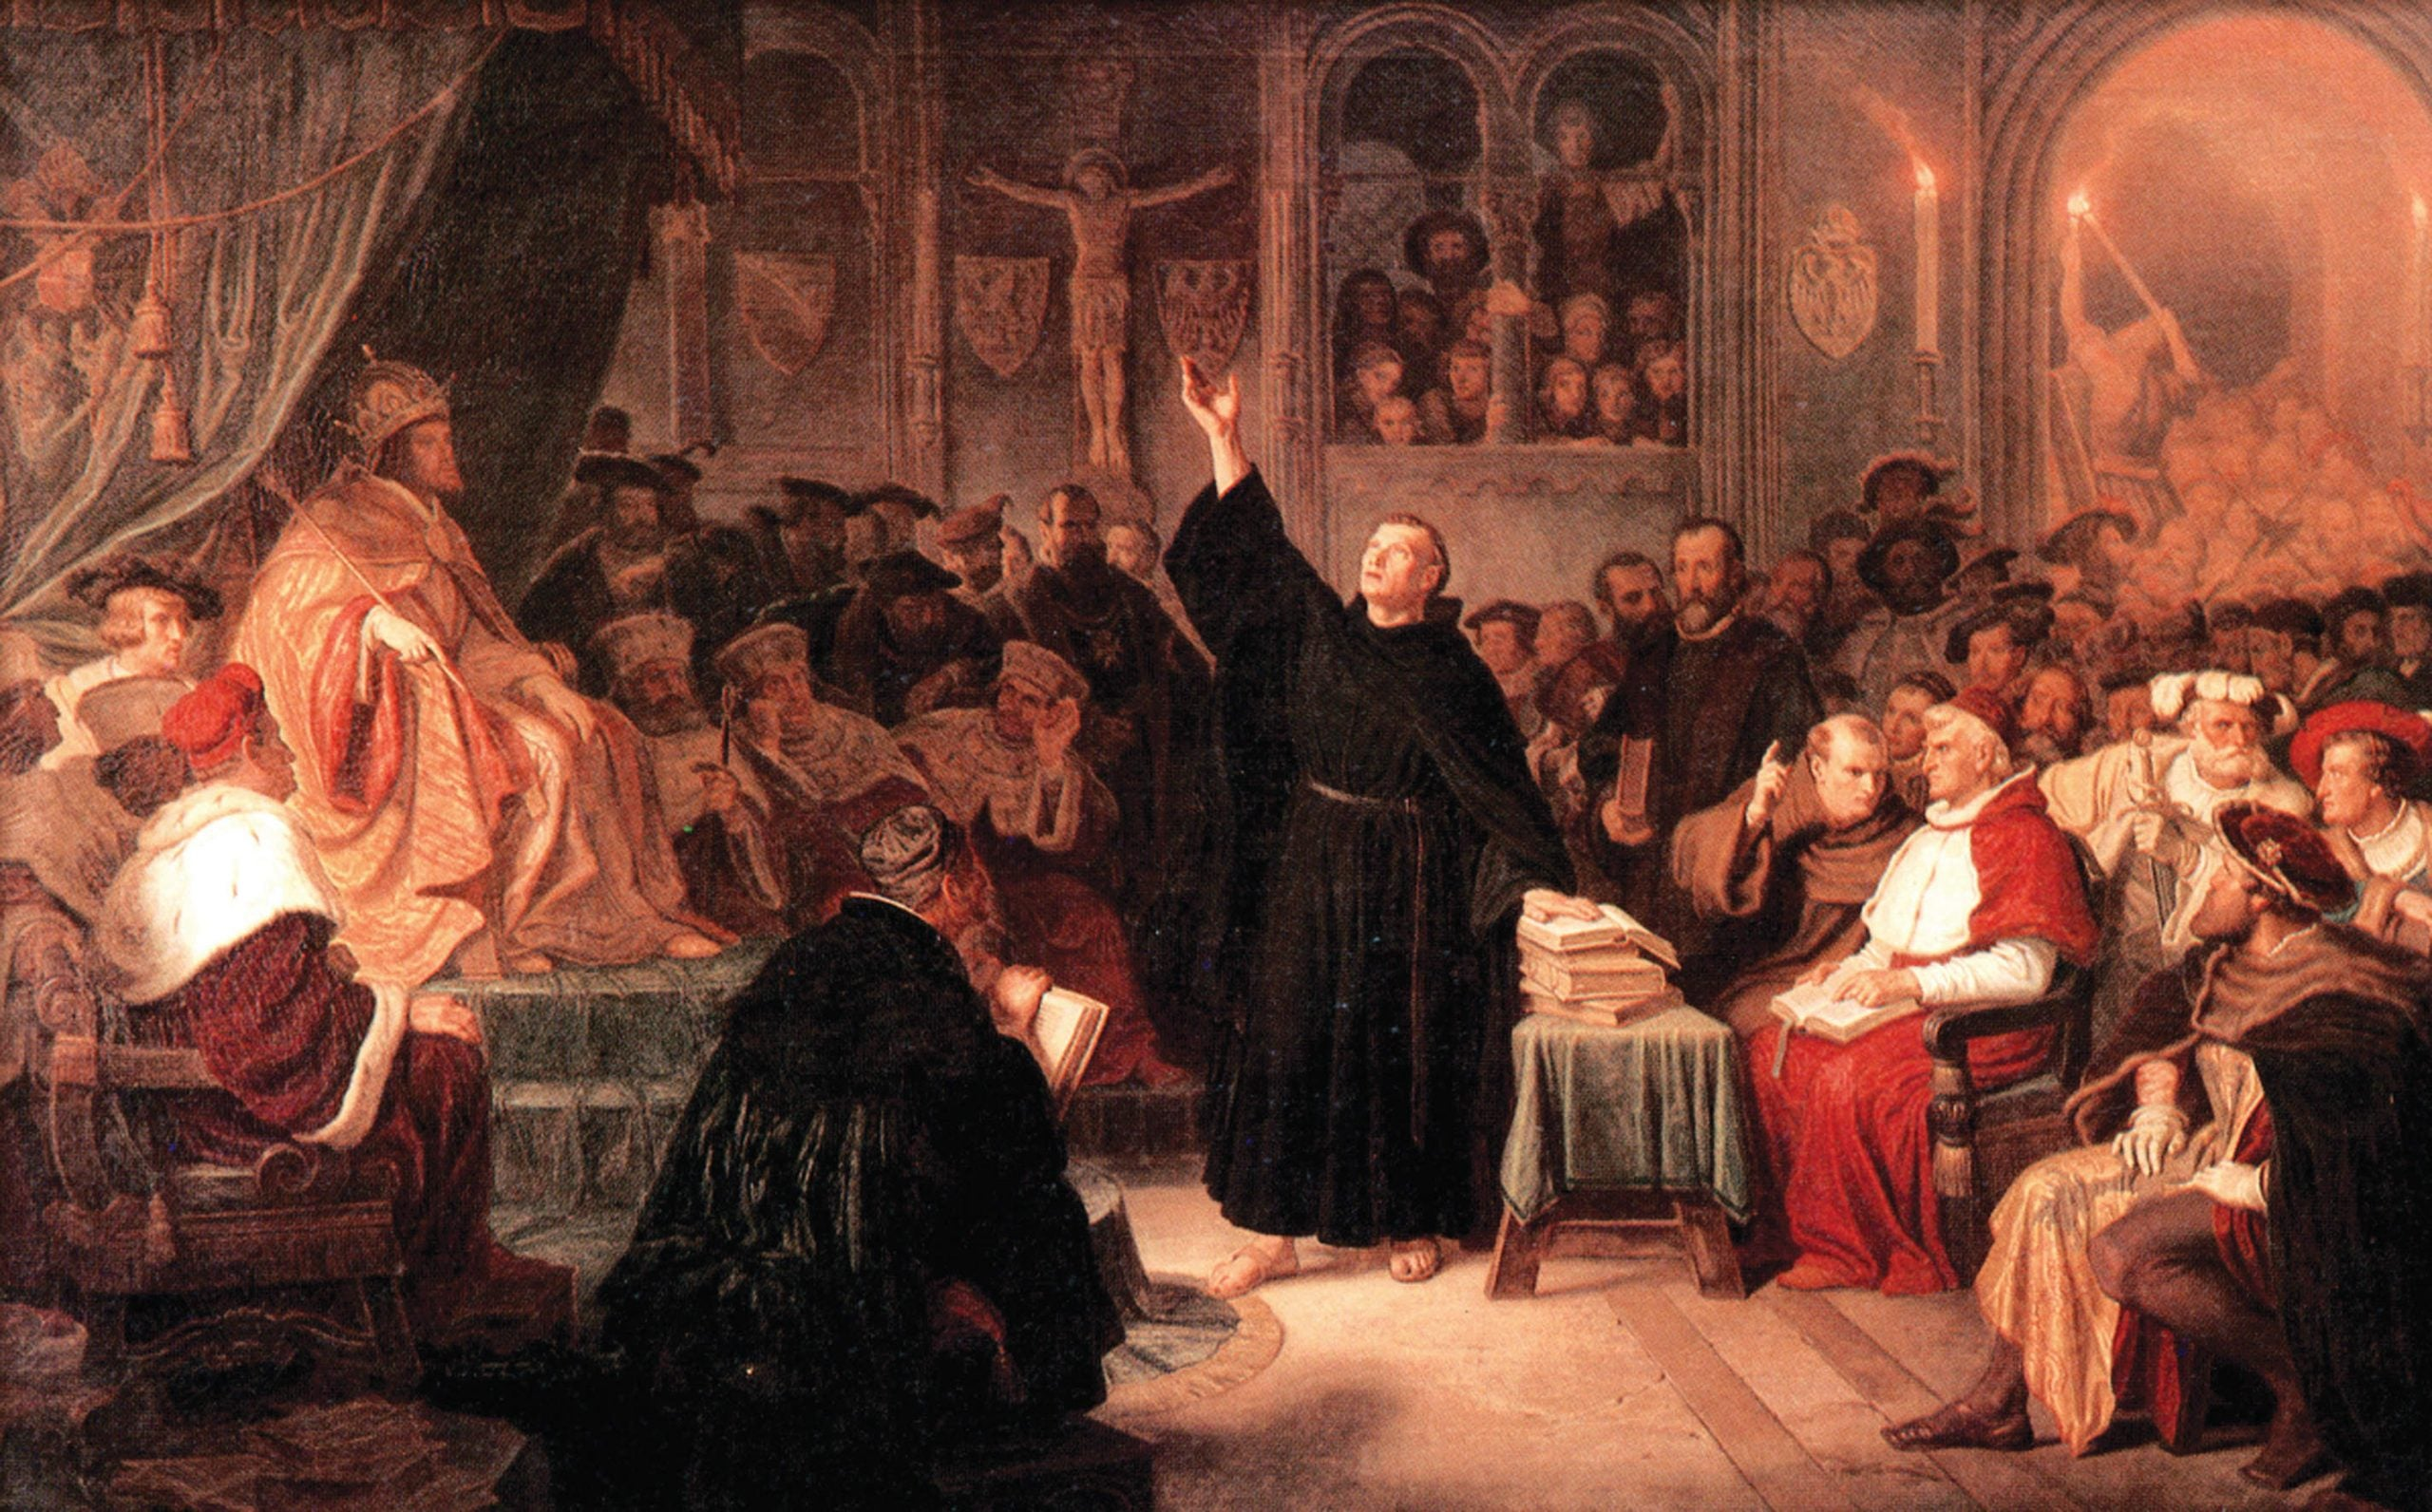 When faith found its Article 50: exploring the theology of Martin Luther